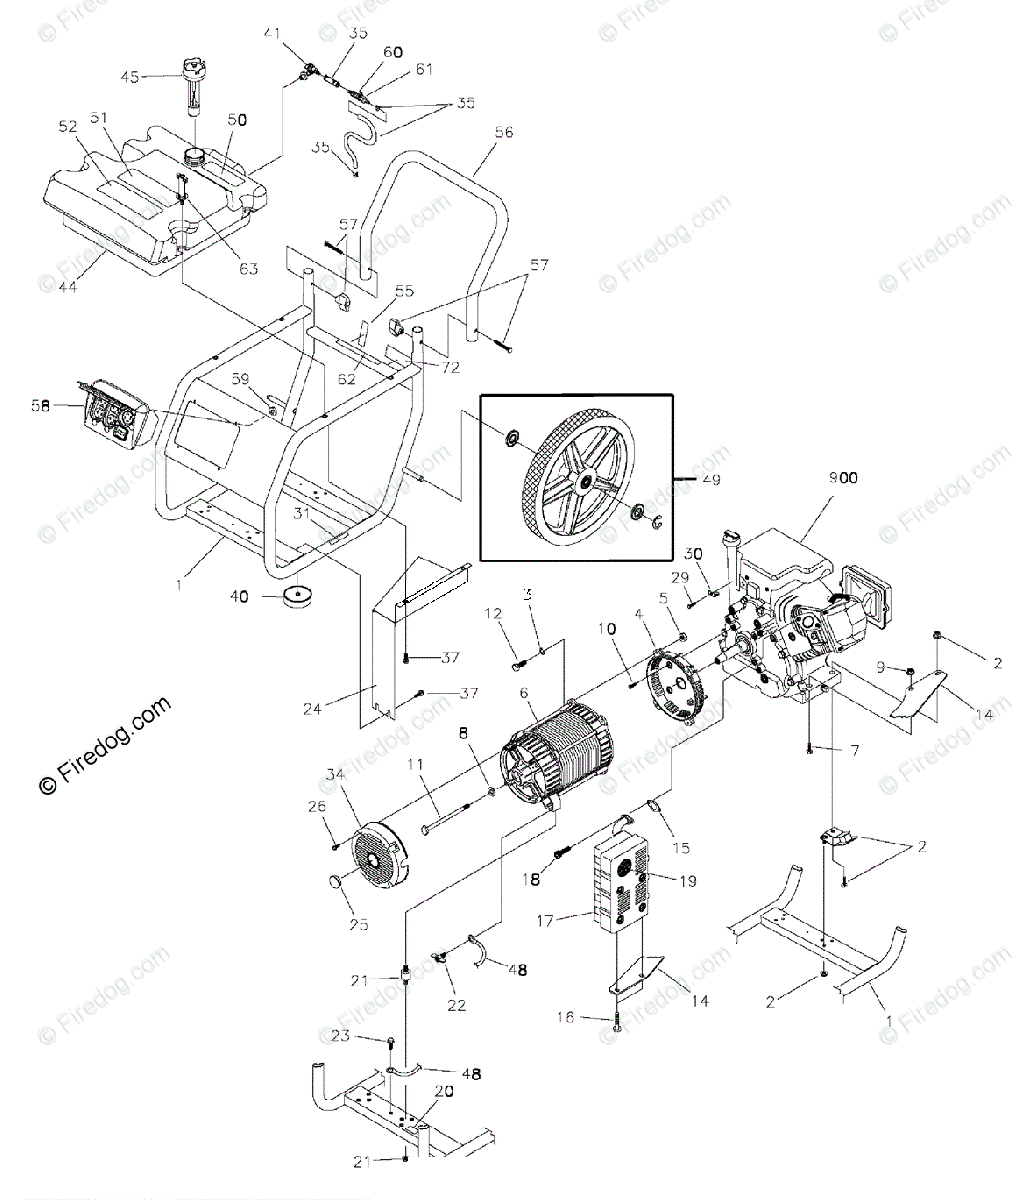 hight resolution of wiring diagram for briggs and stratton 219907 electrical wiring briggs charging system diagram 42a777 wiring diagram